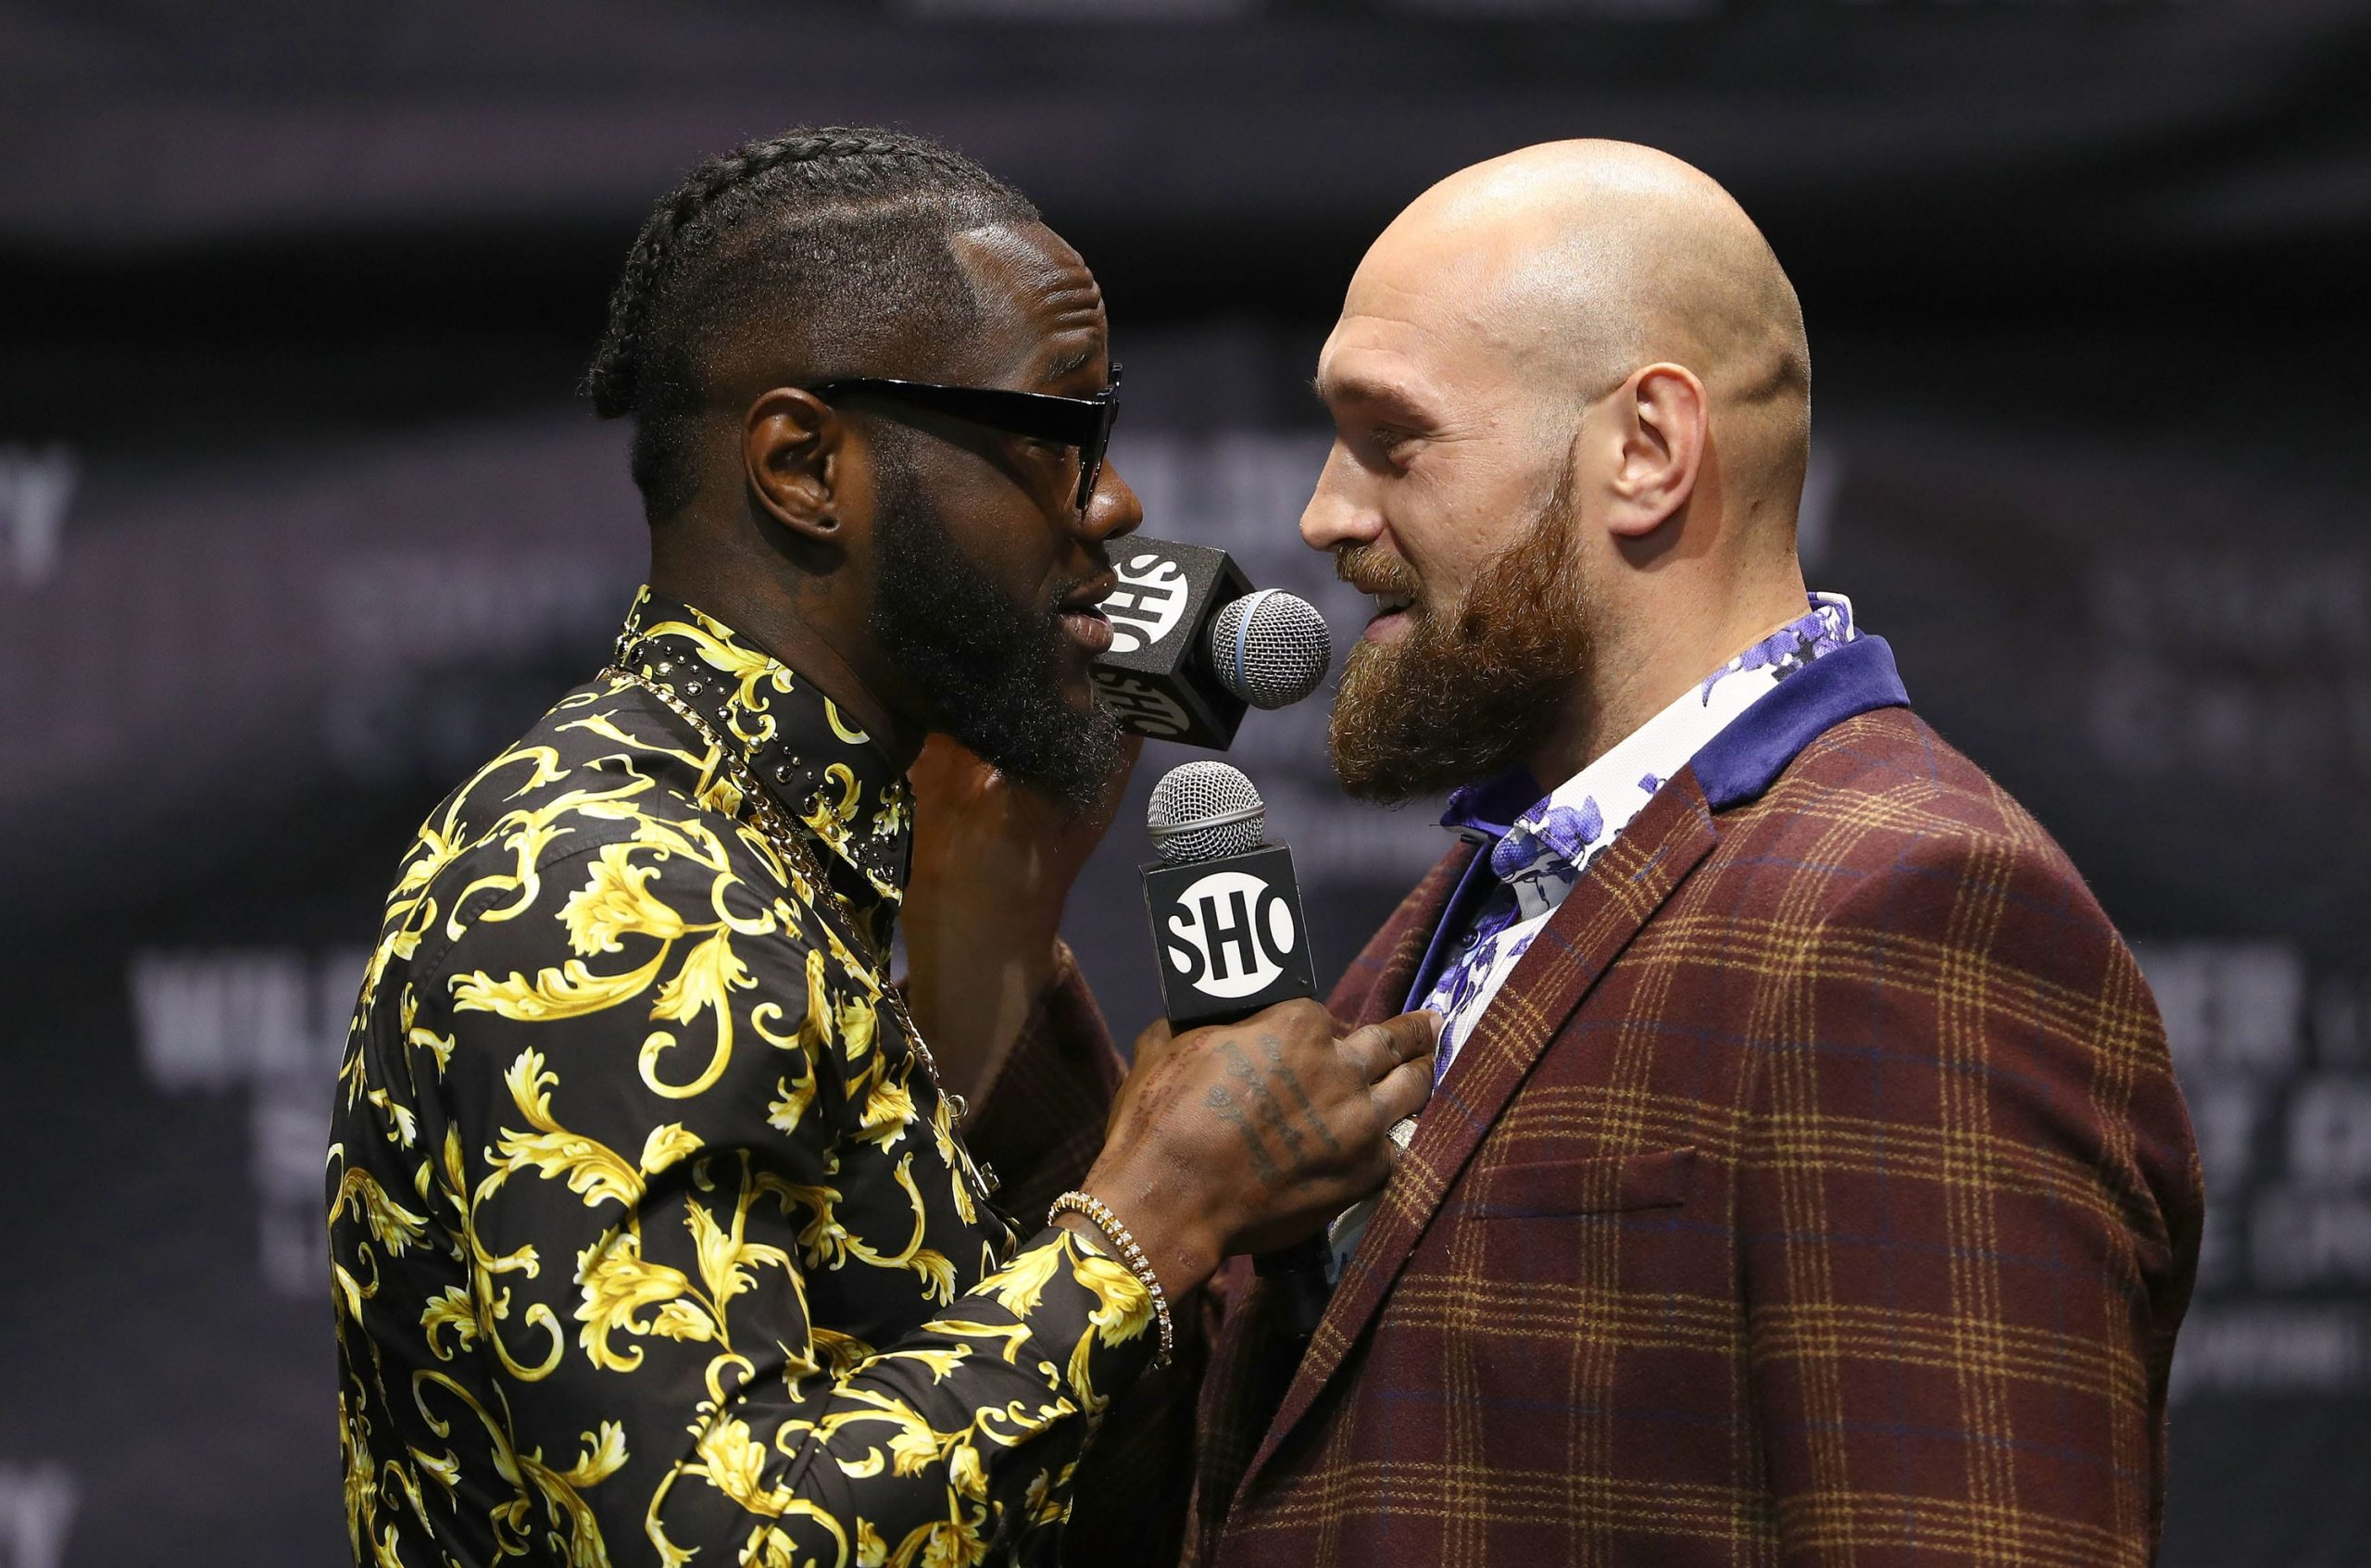 Boxing promoter Bob Arum says the Deontay Wilder rematch against Tyson Fury in Vegas could make more than $100 million